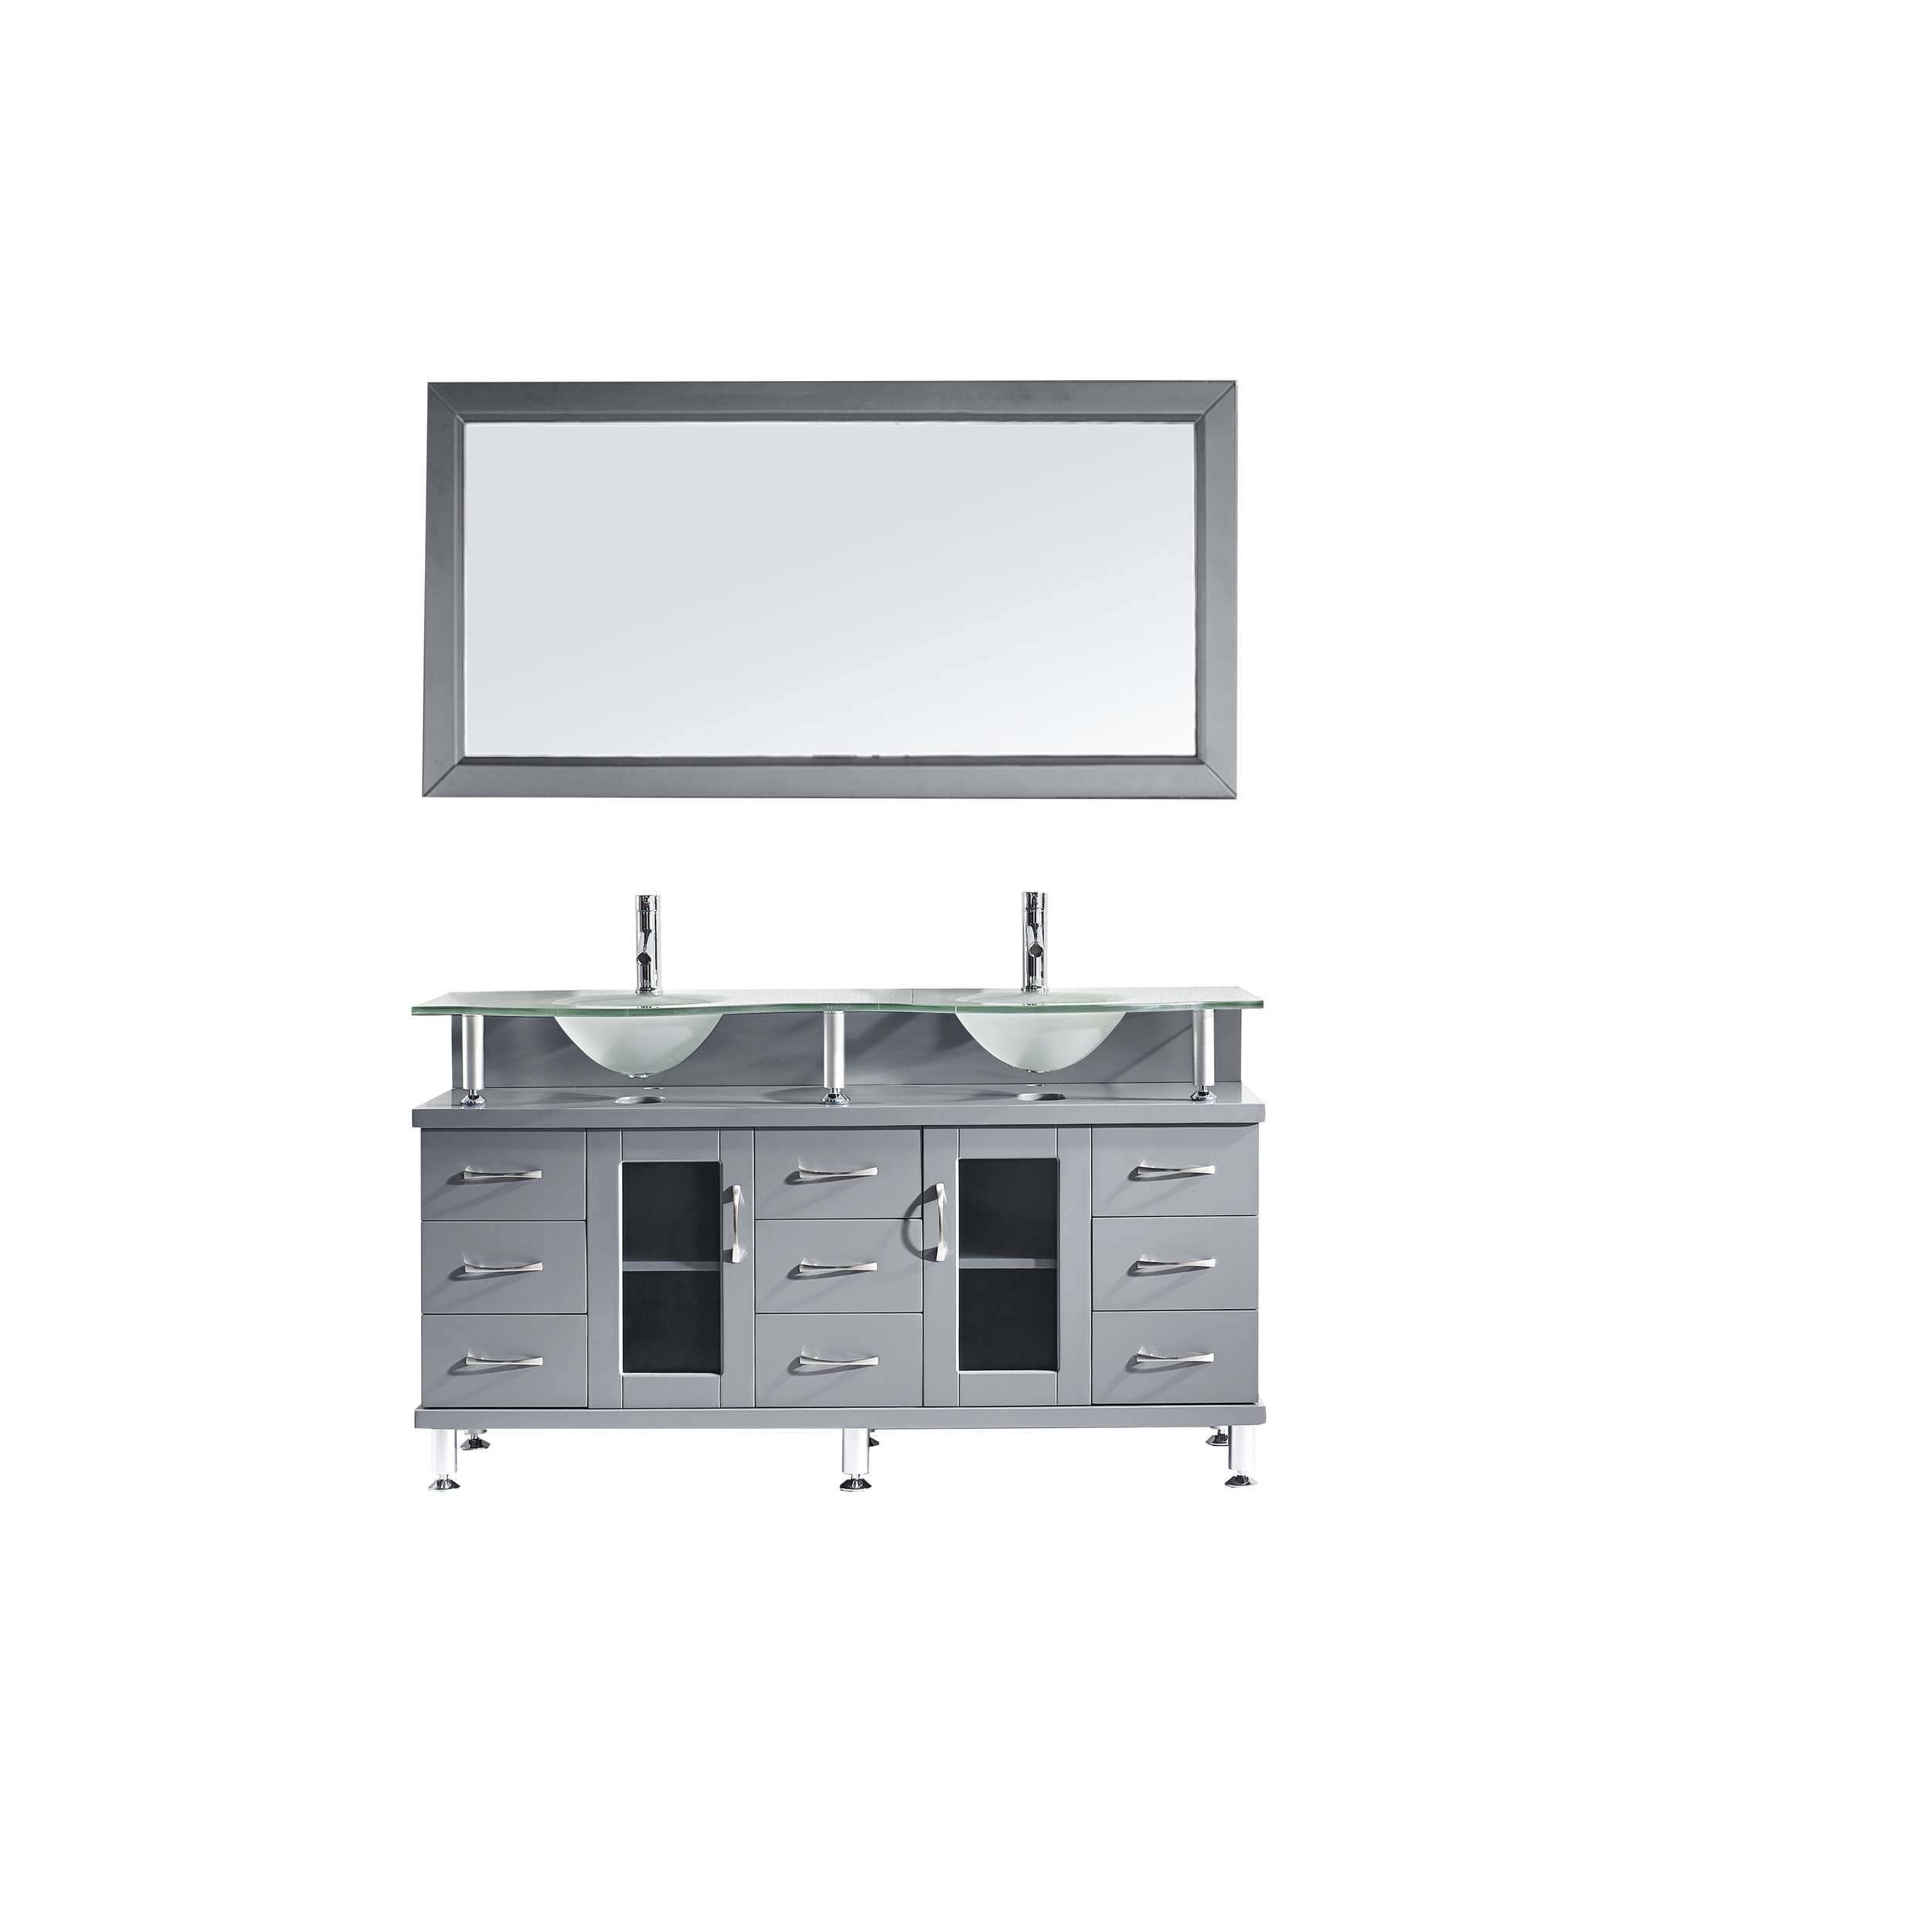 Virtu MD-61-FG-GR-001 Vincente Rocco 59 Inch Double Bathroom Vanity Set In Grey With Frosted Glass Top